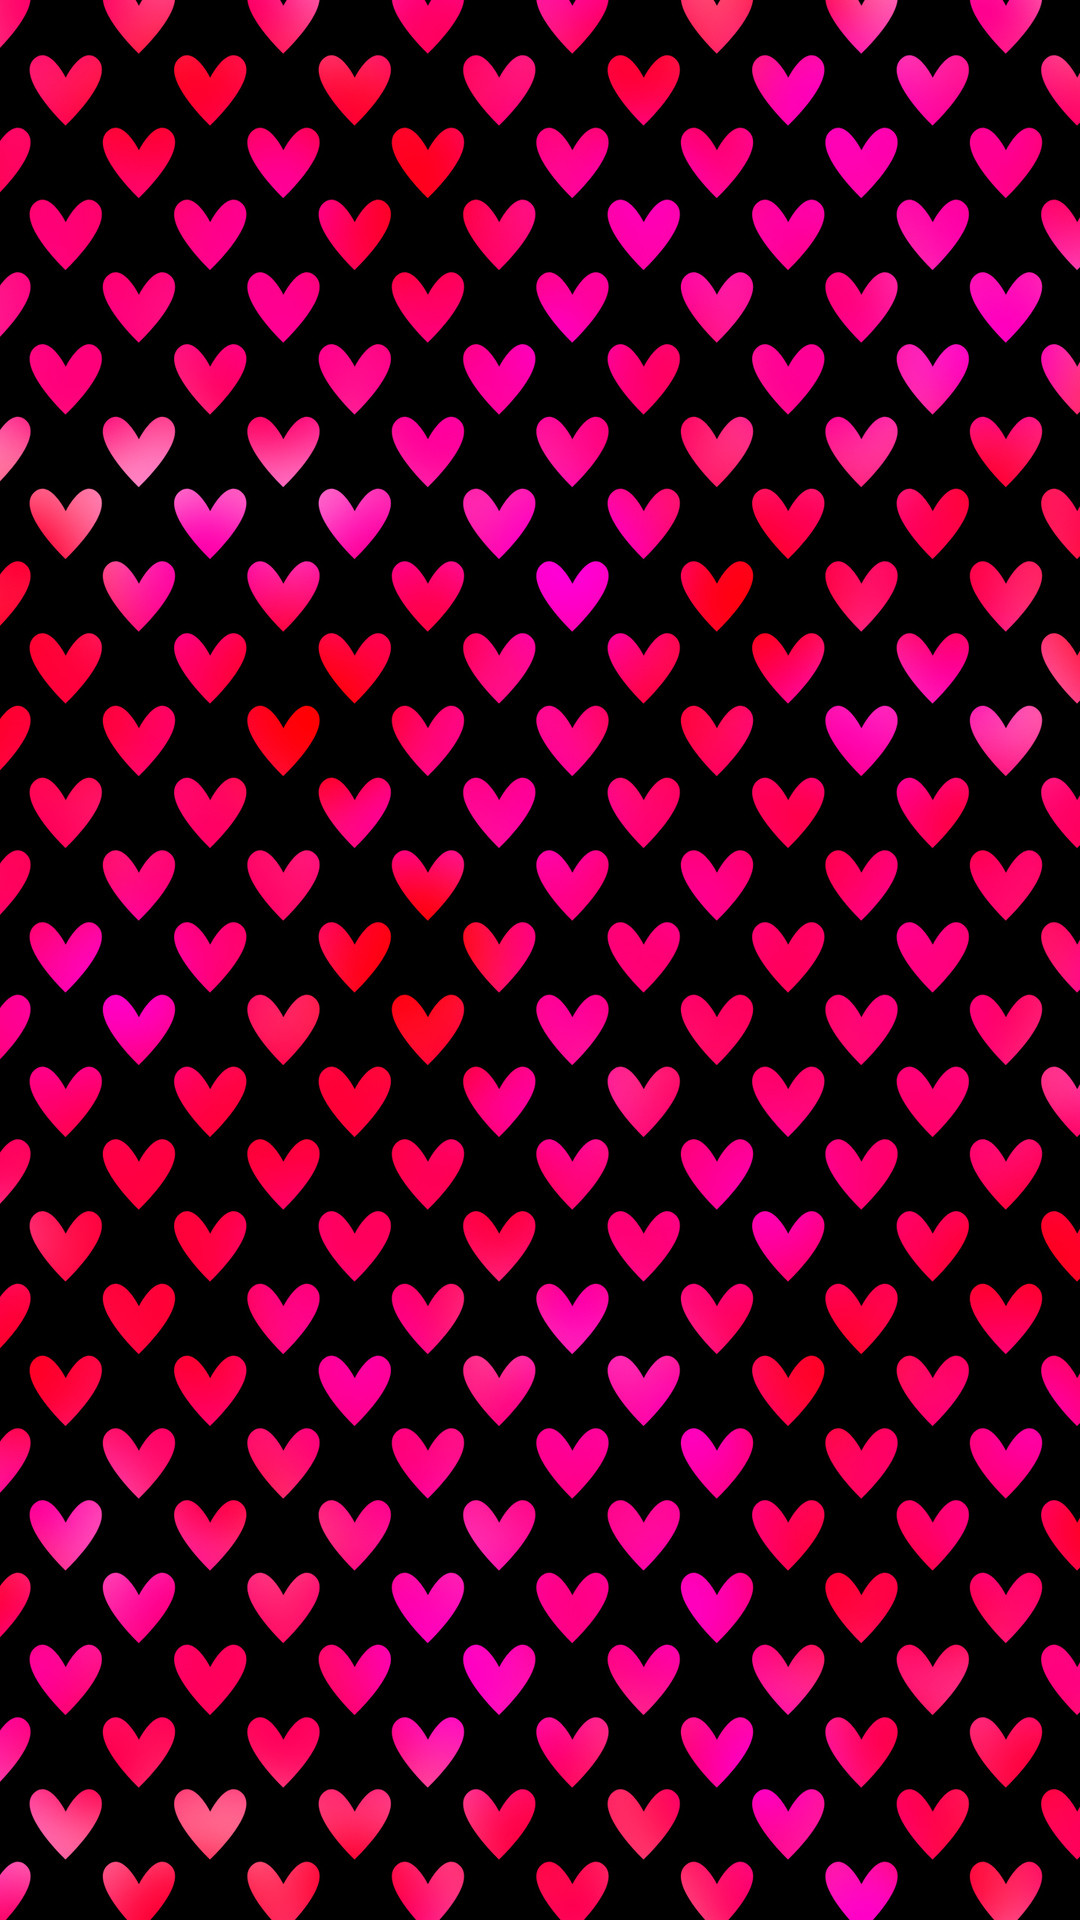 Red and pink hearts Wallpaper